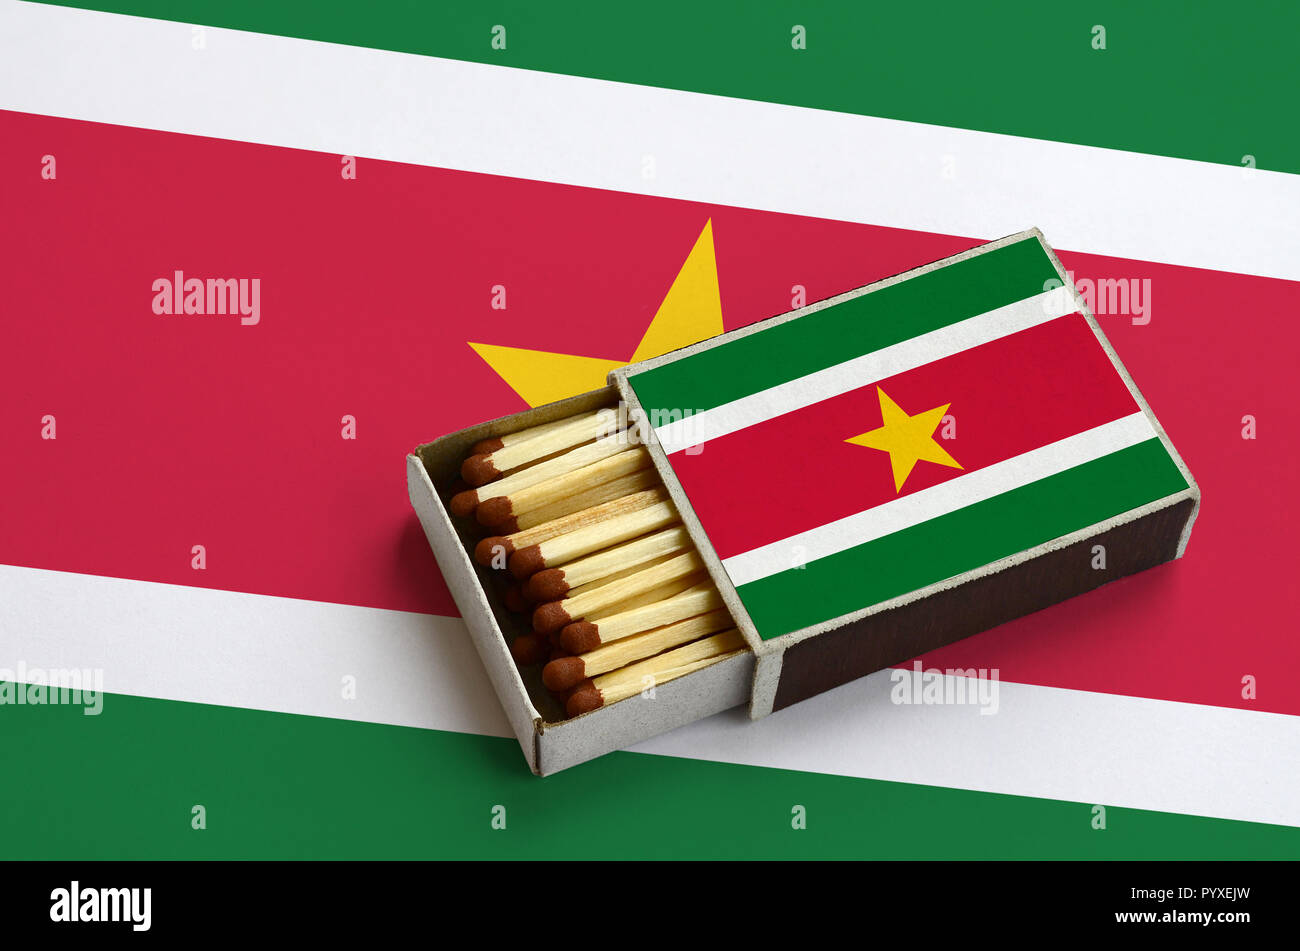 Suriname flag  is shown in an open matchbox, which is filled with matches and lies on a large flag. Stock Photo